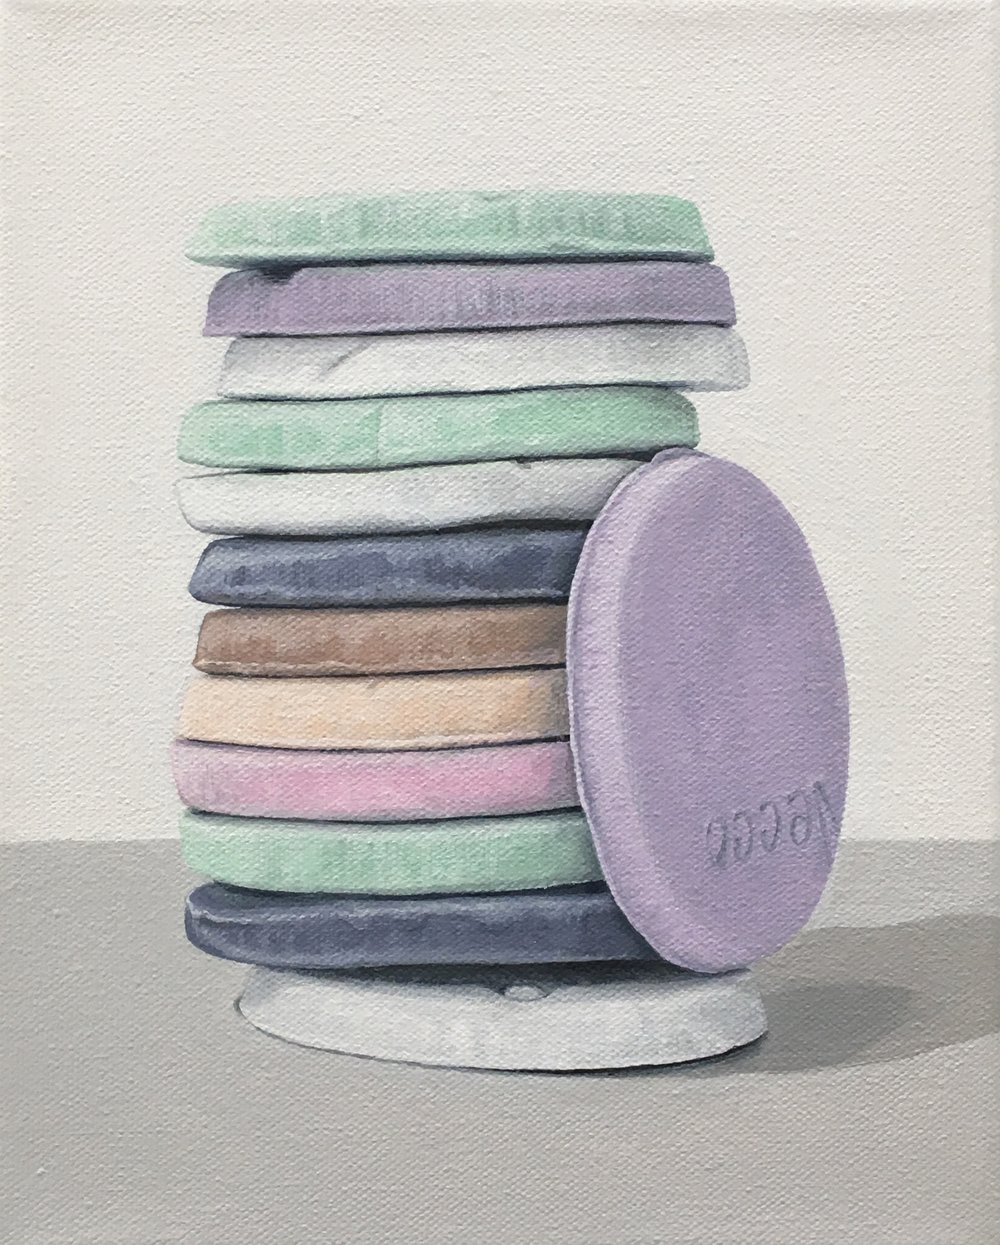 "Totem: Necco Wafer V  This little candy stacks is built from 'An American Classic' candy, the Necco Wafer. As a culture we are generally attracted to these charming colors, but once the candy is experienced as a food there is often a mismatch between its attractiveness and its taste. This work explores the occurrence of the incongruity of appearance and experience.  8"" x 10"" gallery wrapped canvas  $250.00"